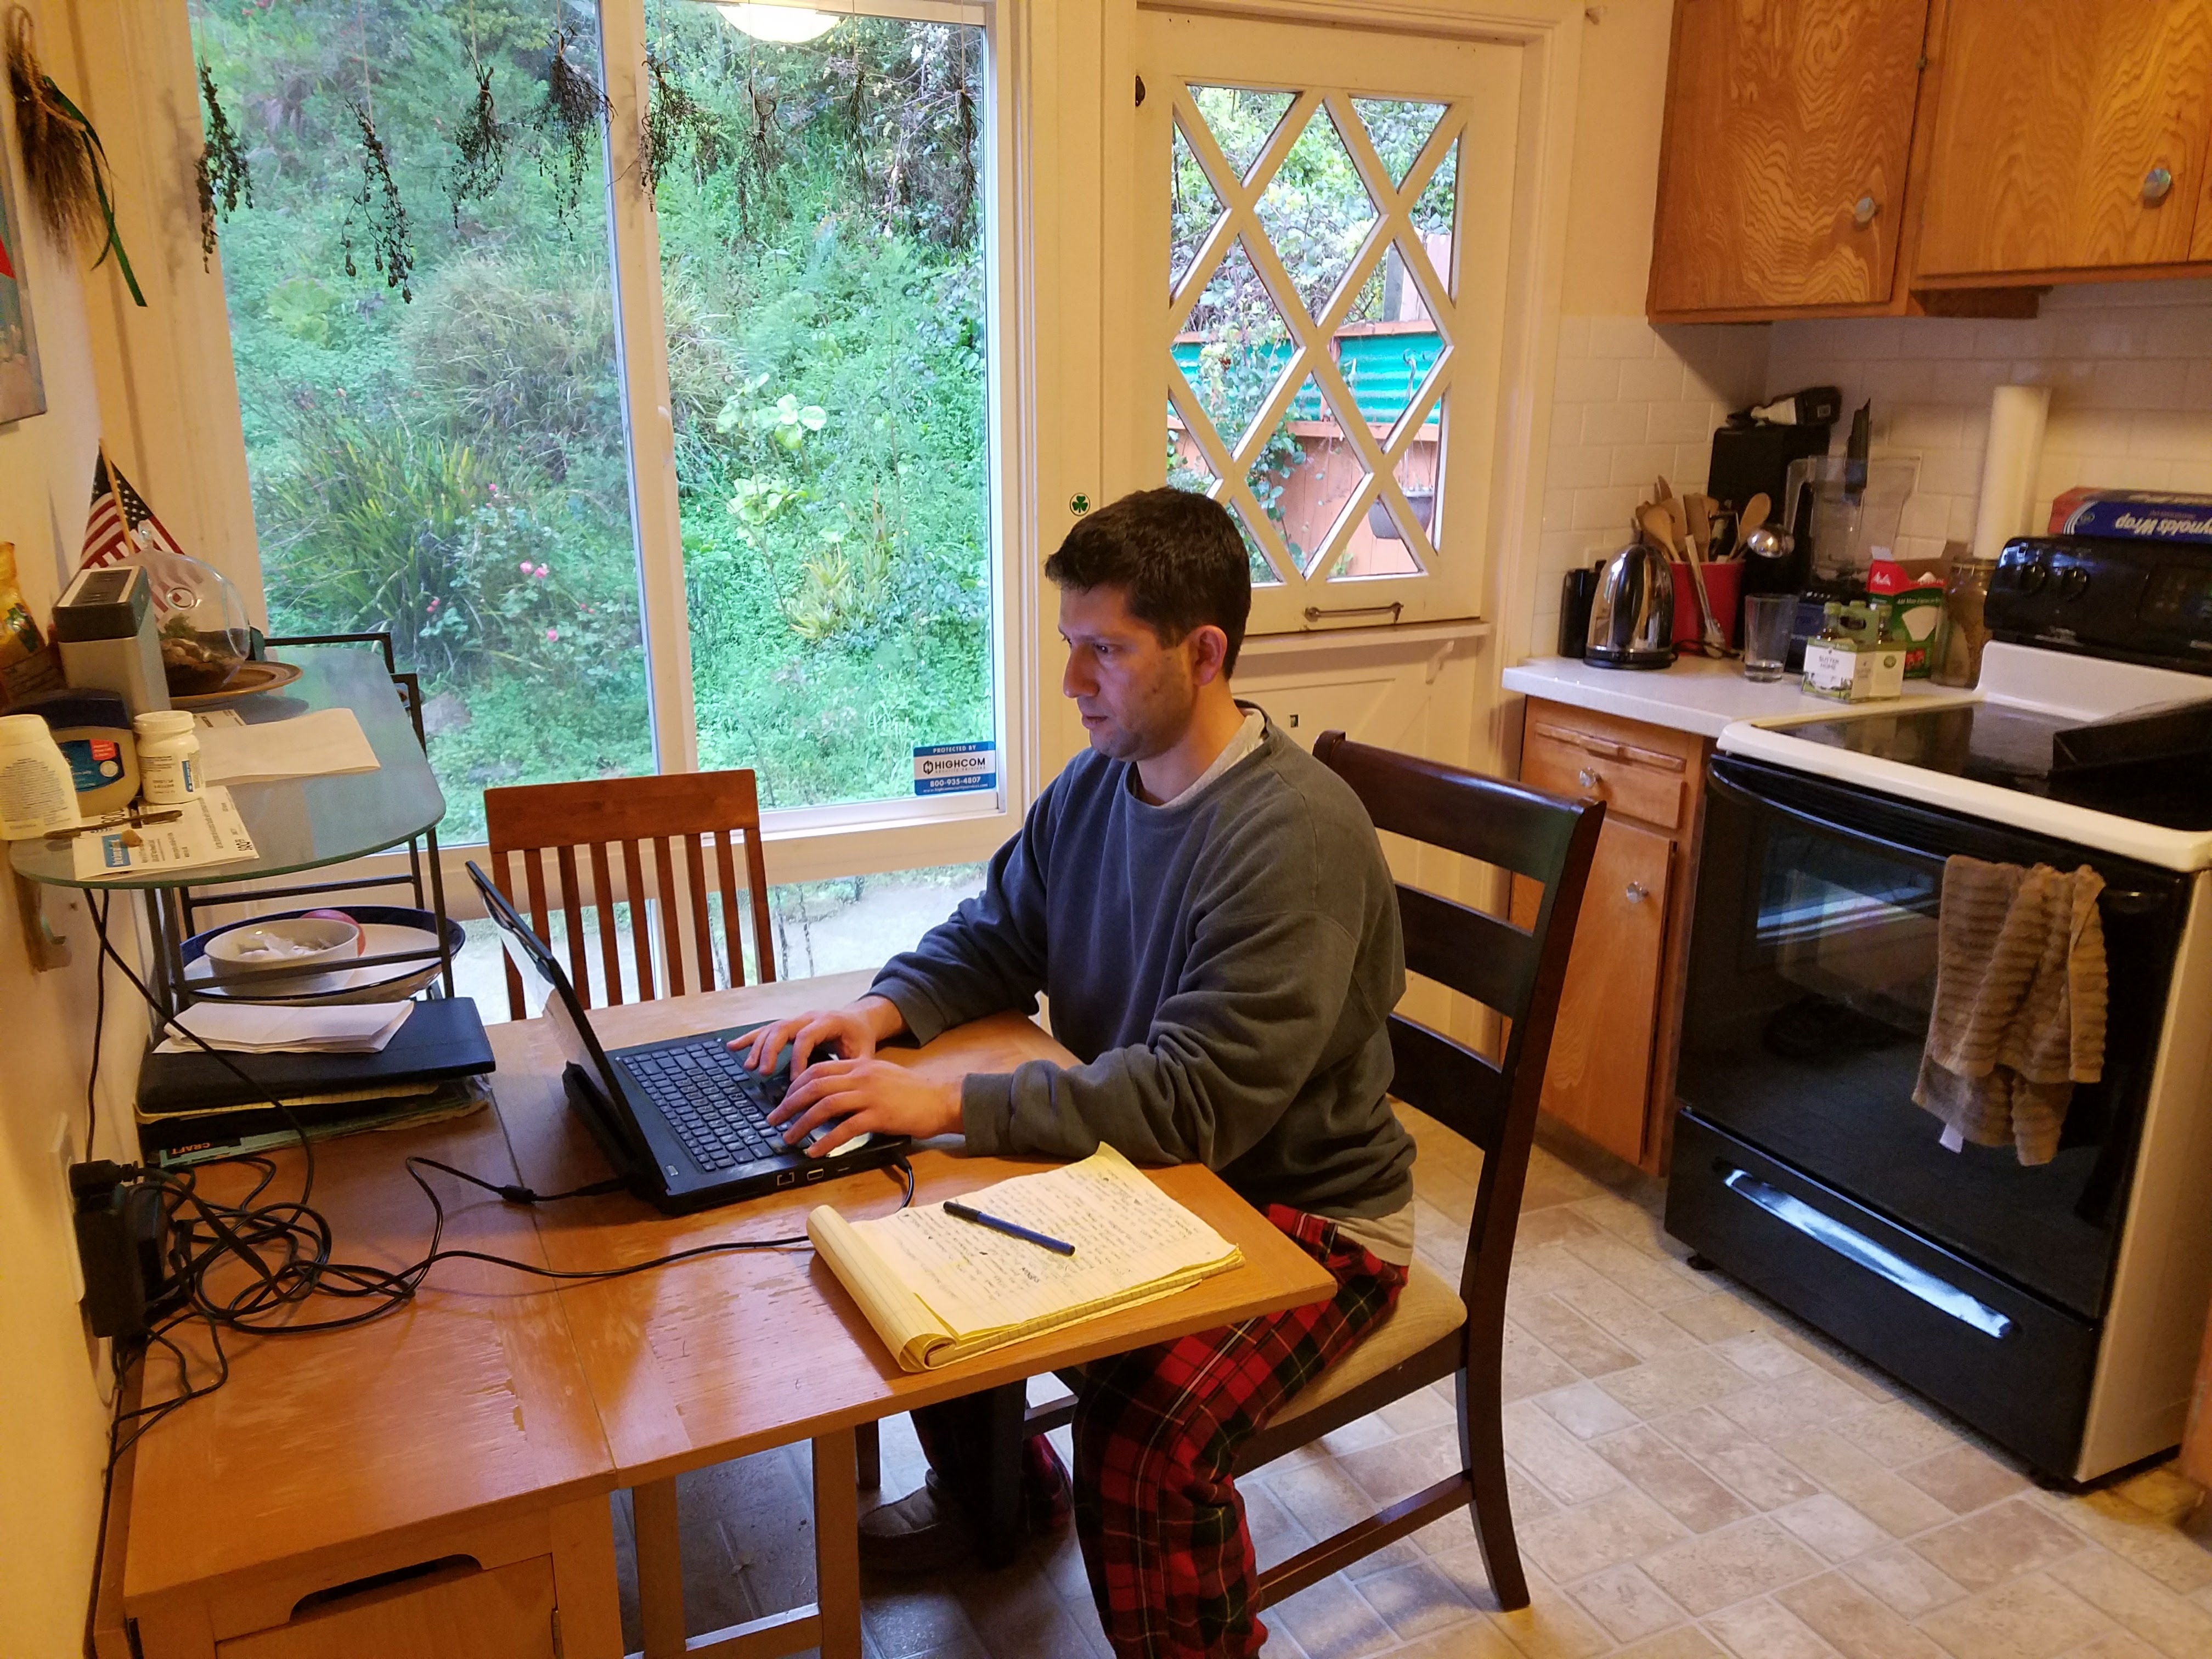 Tips & Suggestions on Writing Your Book